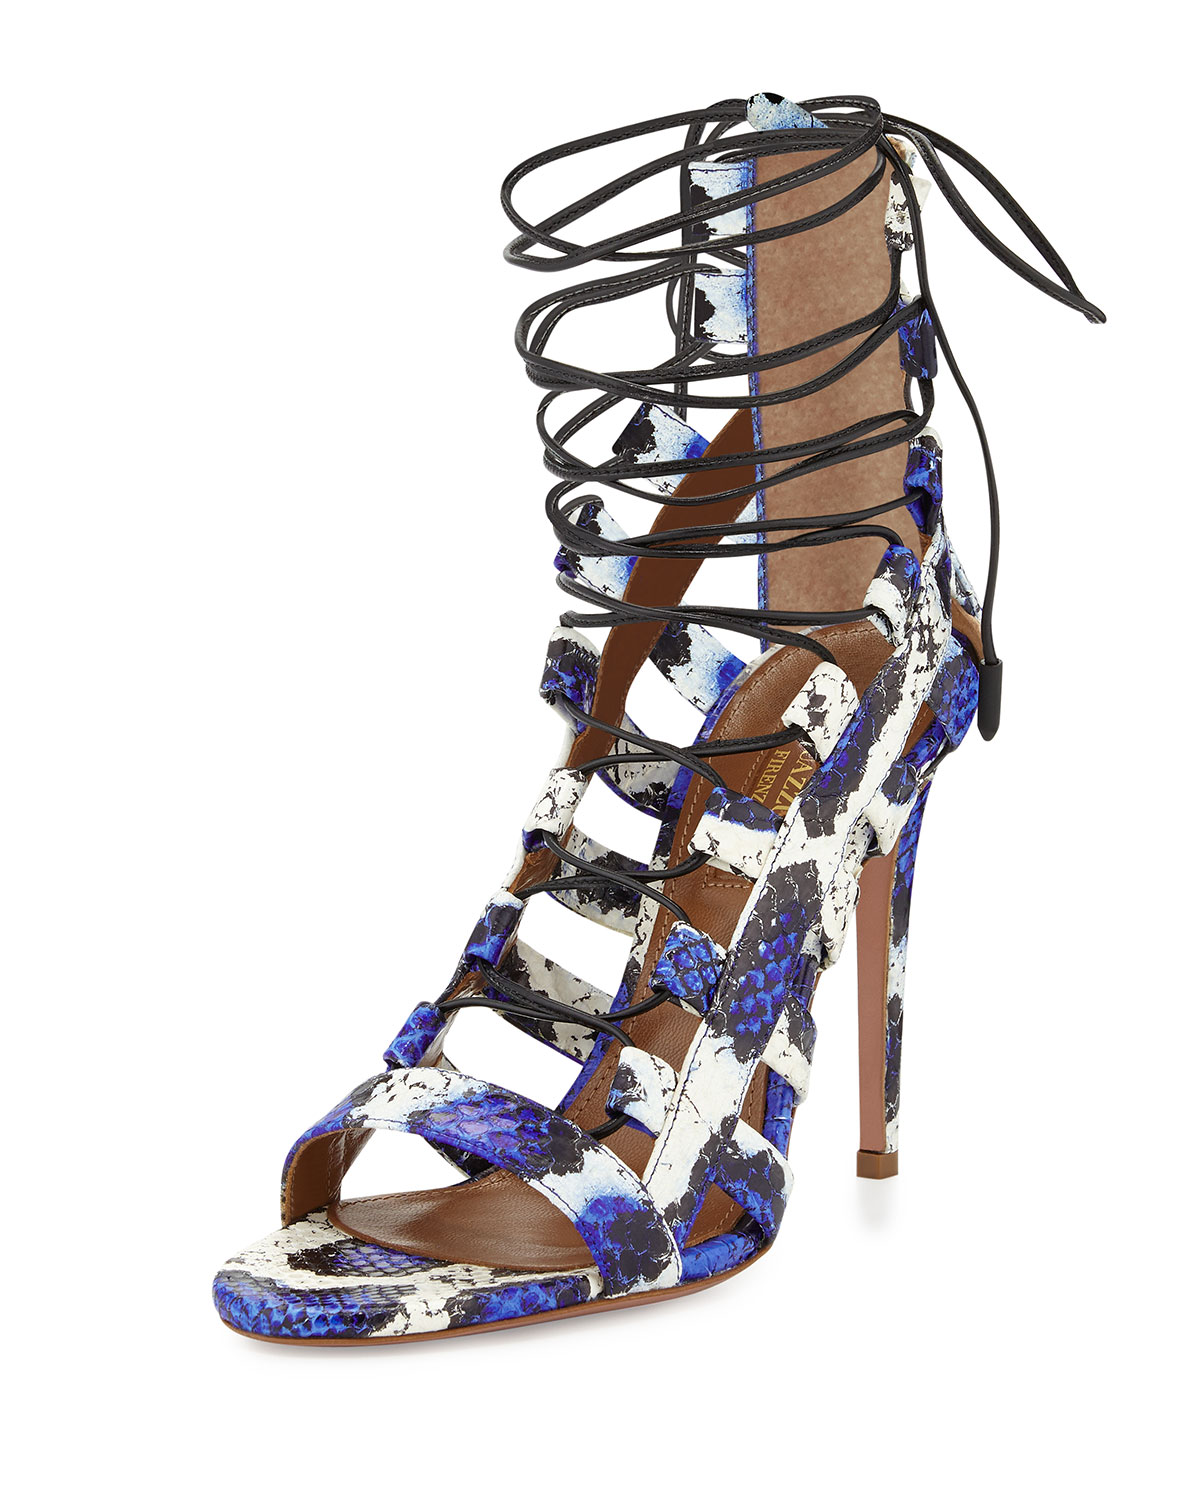 c015770a4db0 Aquazzura Amazon Lace-Up Snakeskin Sandal